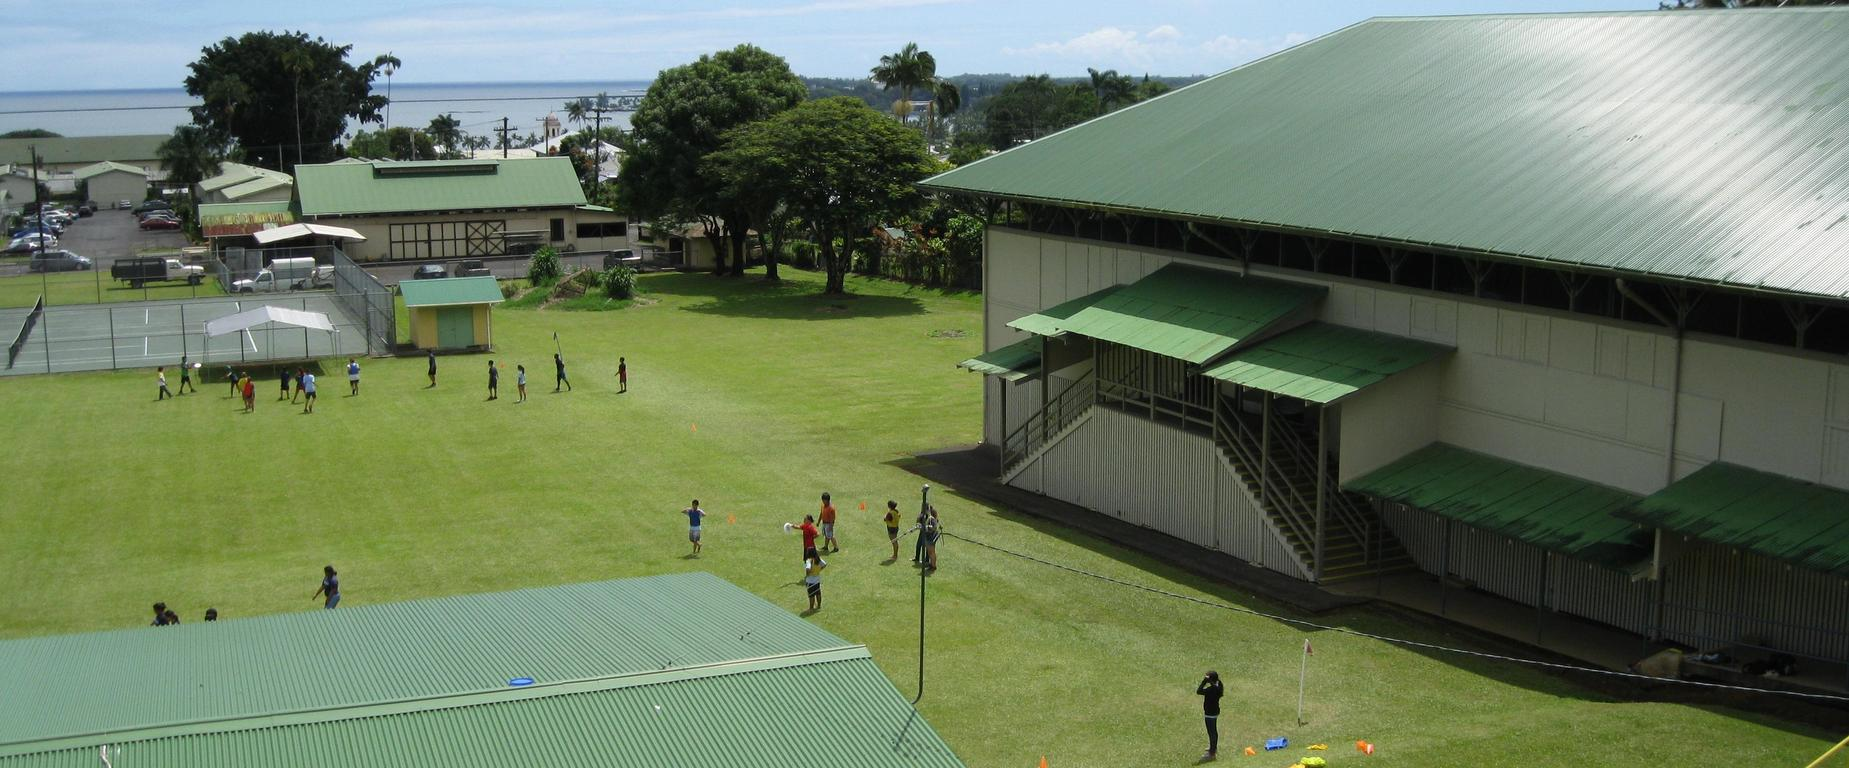 Placeholder text, please change